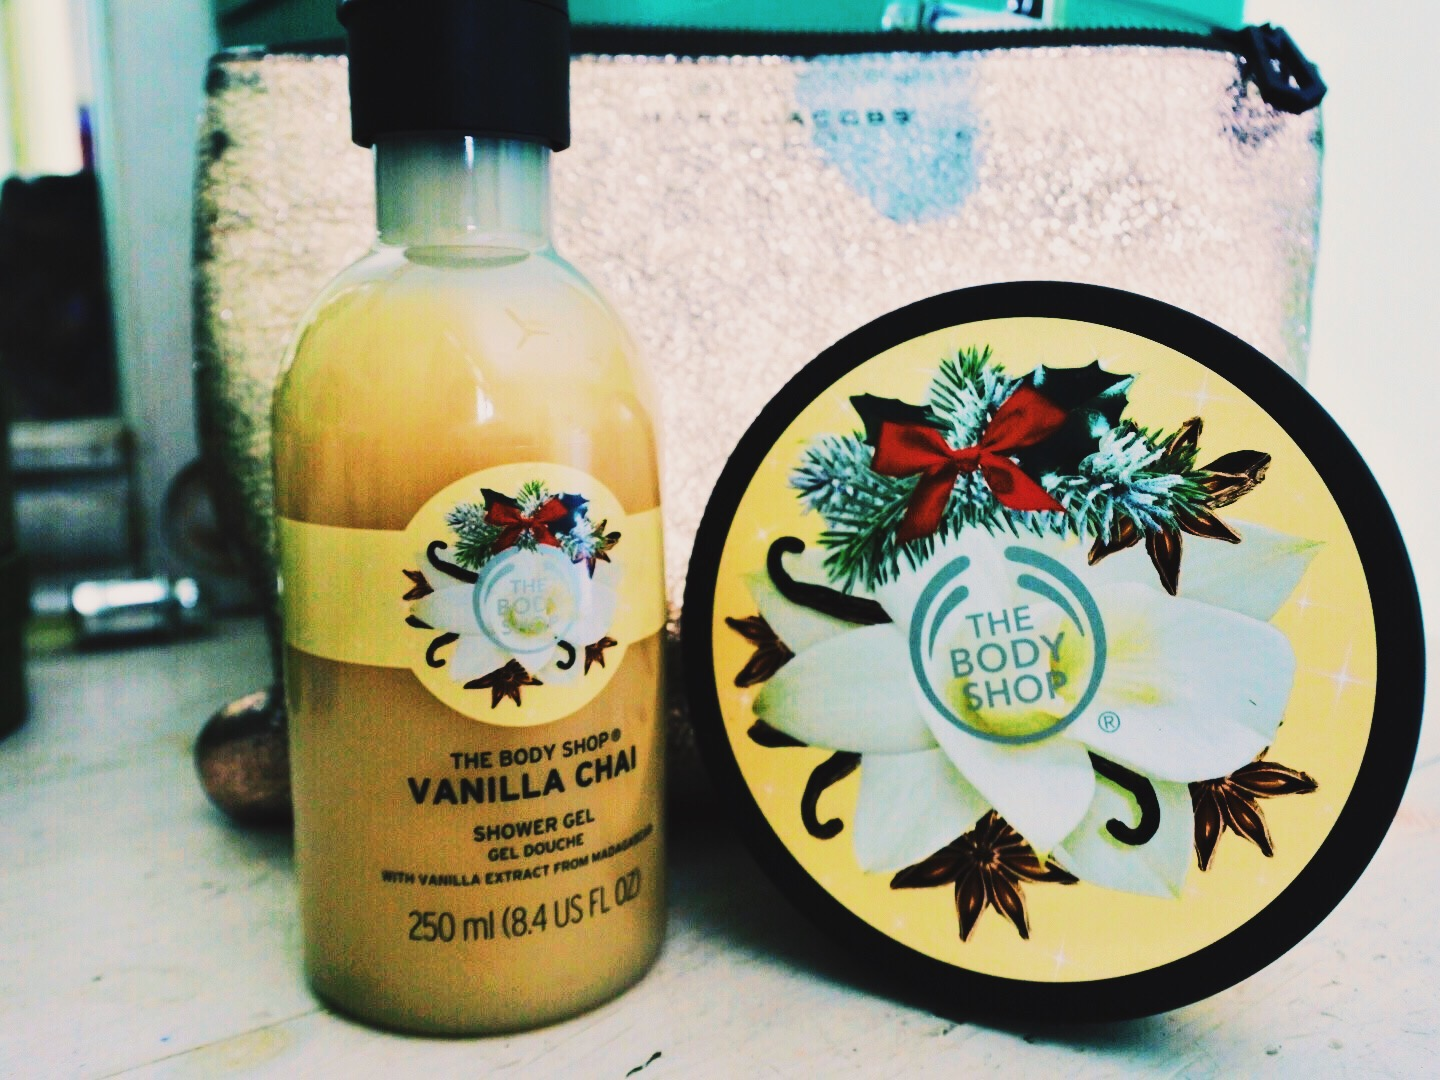 The Body Shop Vanilla Chai range